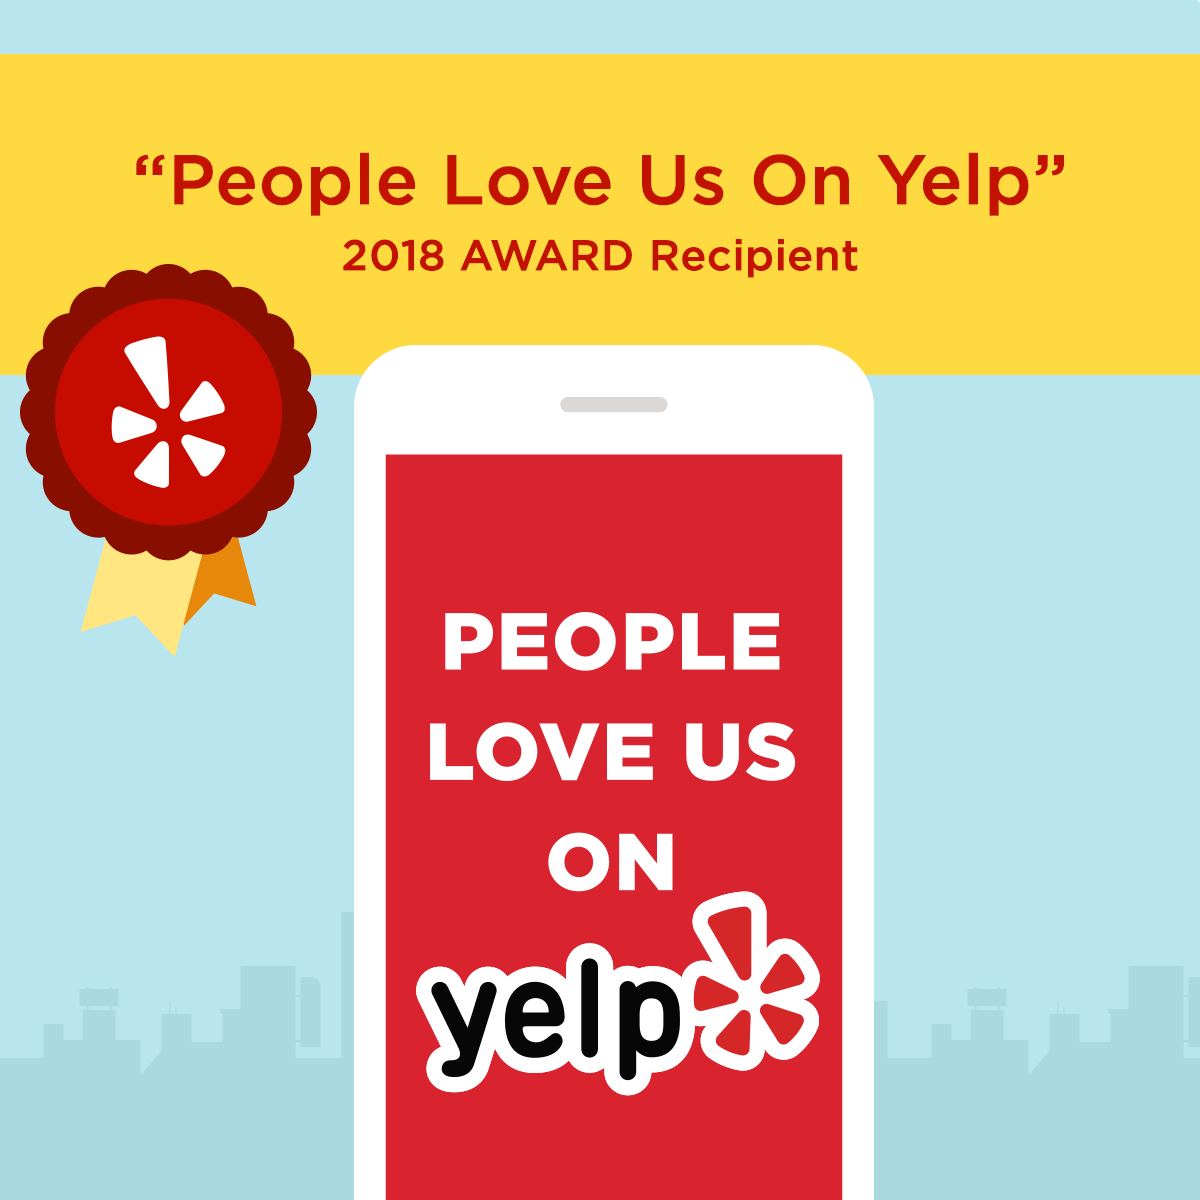 It's official – people love us on Yelp!